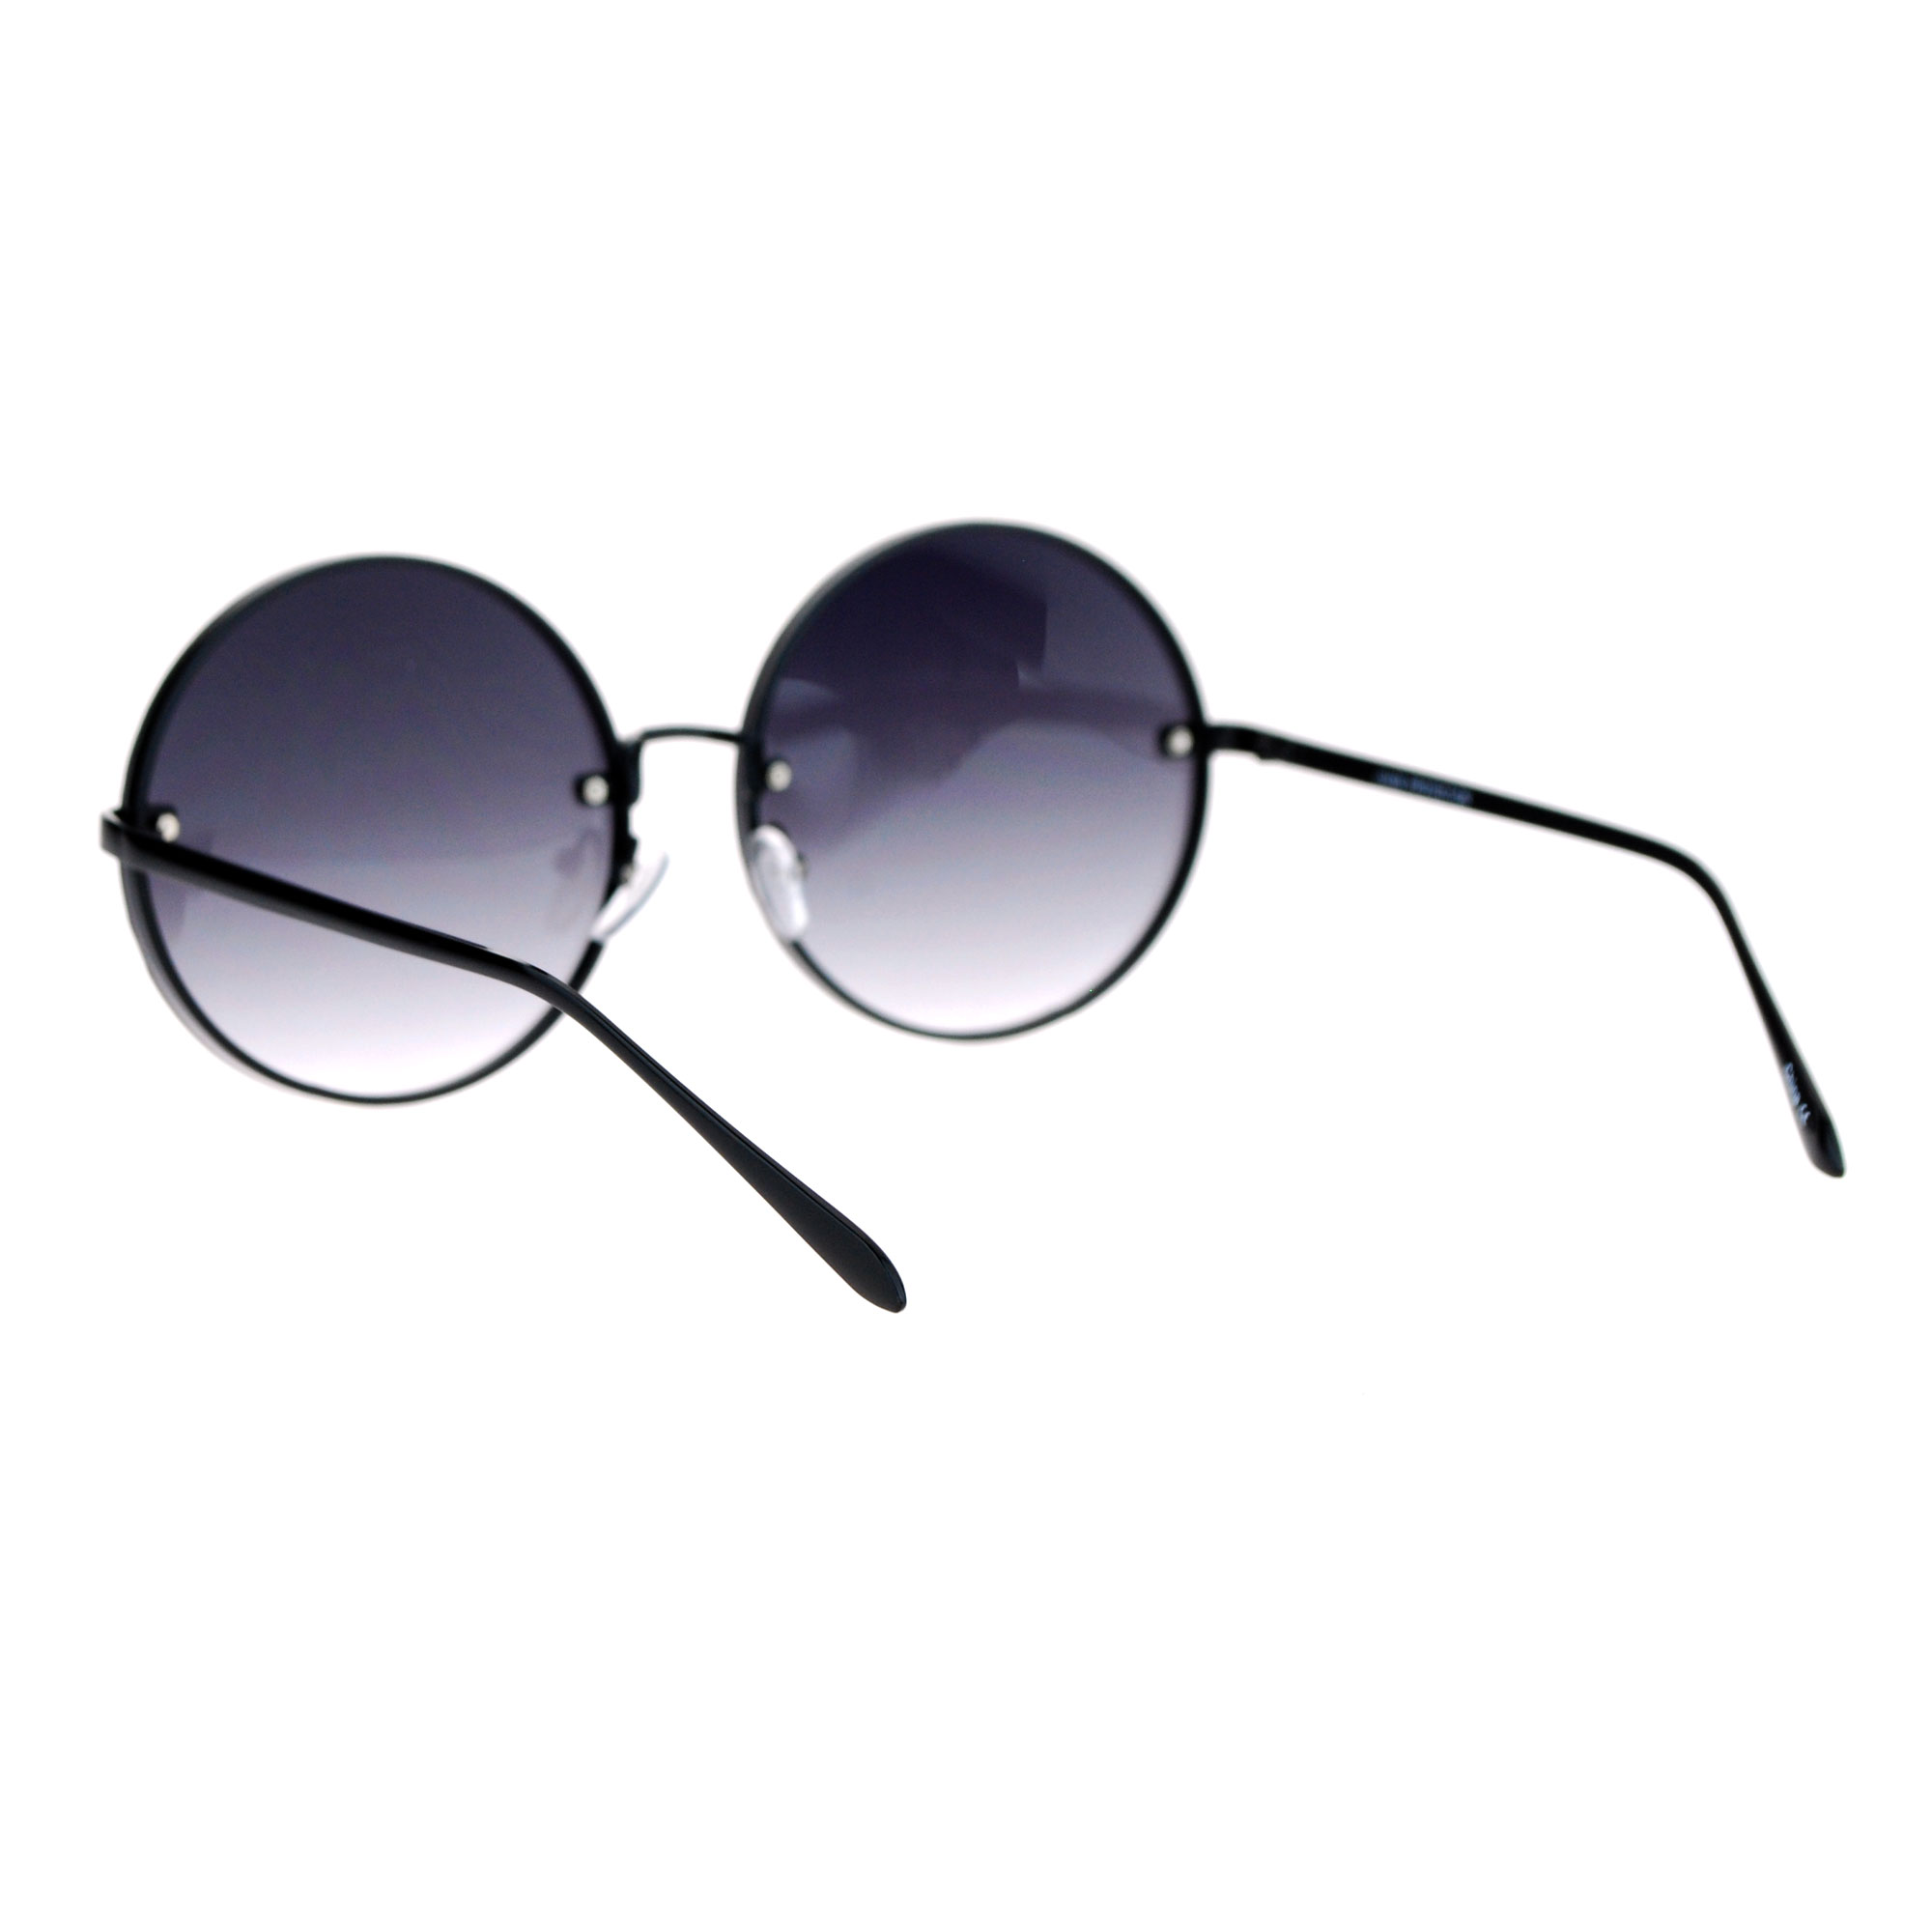 Rimless Glasses Round Lens : SA106 Rimless Large Hippie Round Circle Lens Womens ...